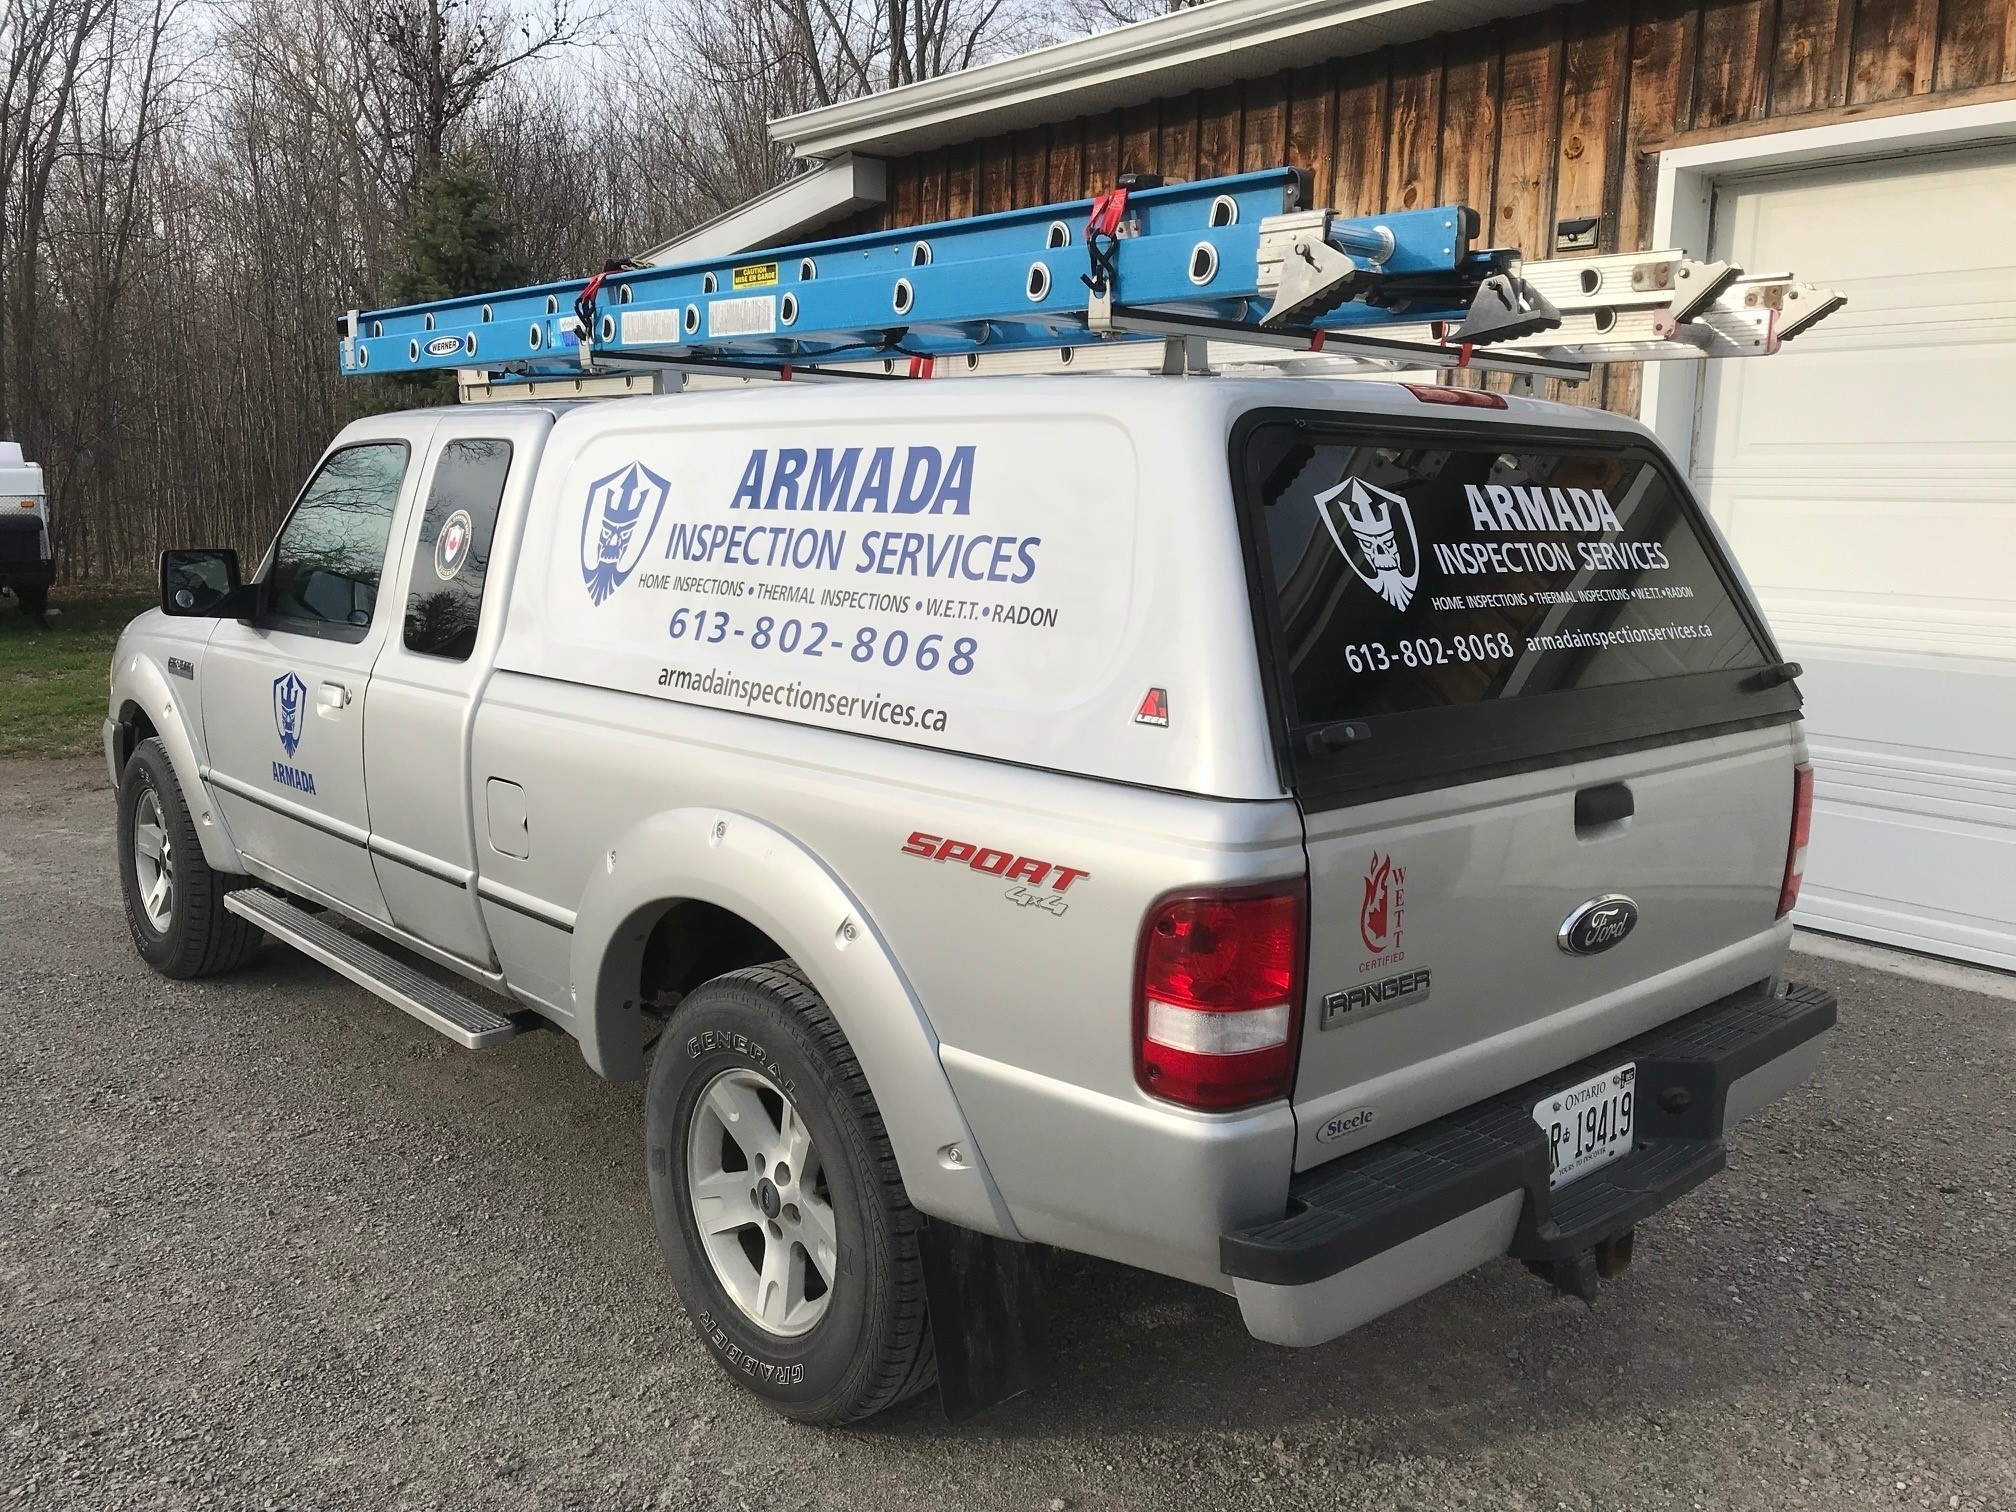 Armada Inspection Services in Athens